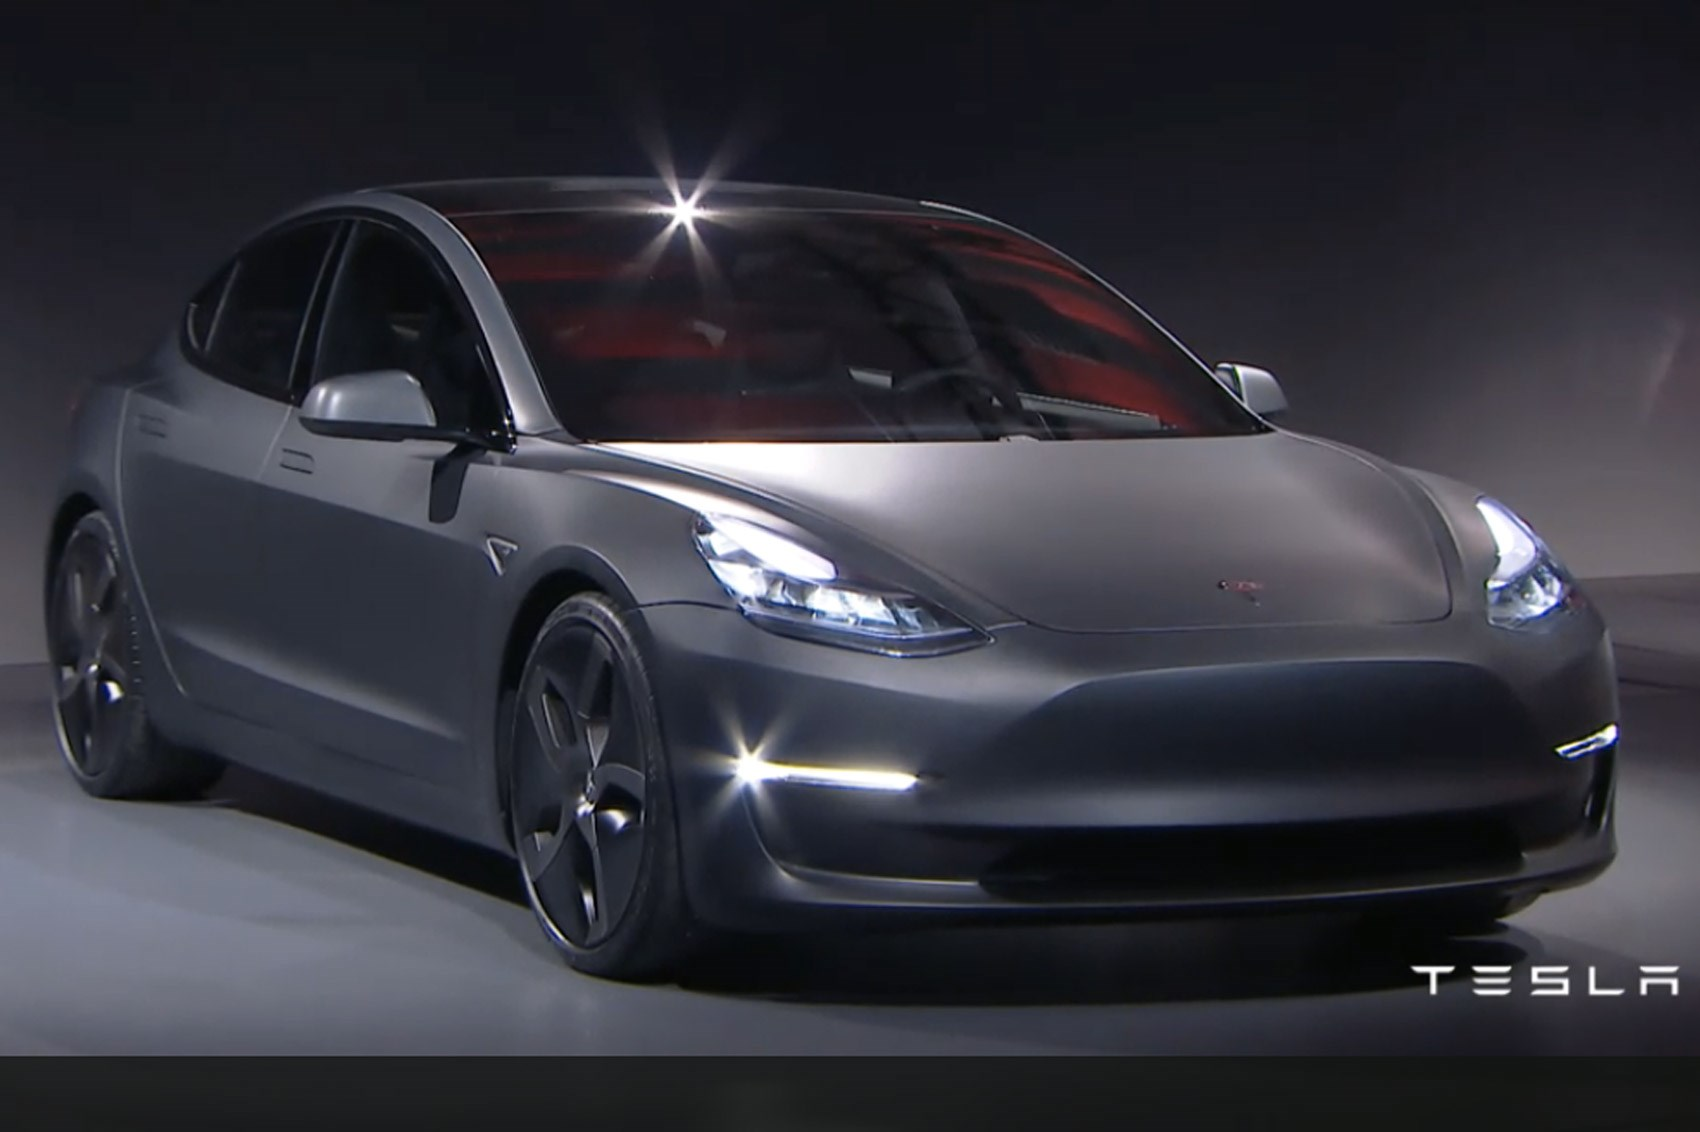 Tesla Model 3 specs: Elon Musk's budget EV is faster than we thought by CAR Magazine